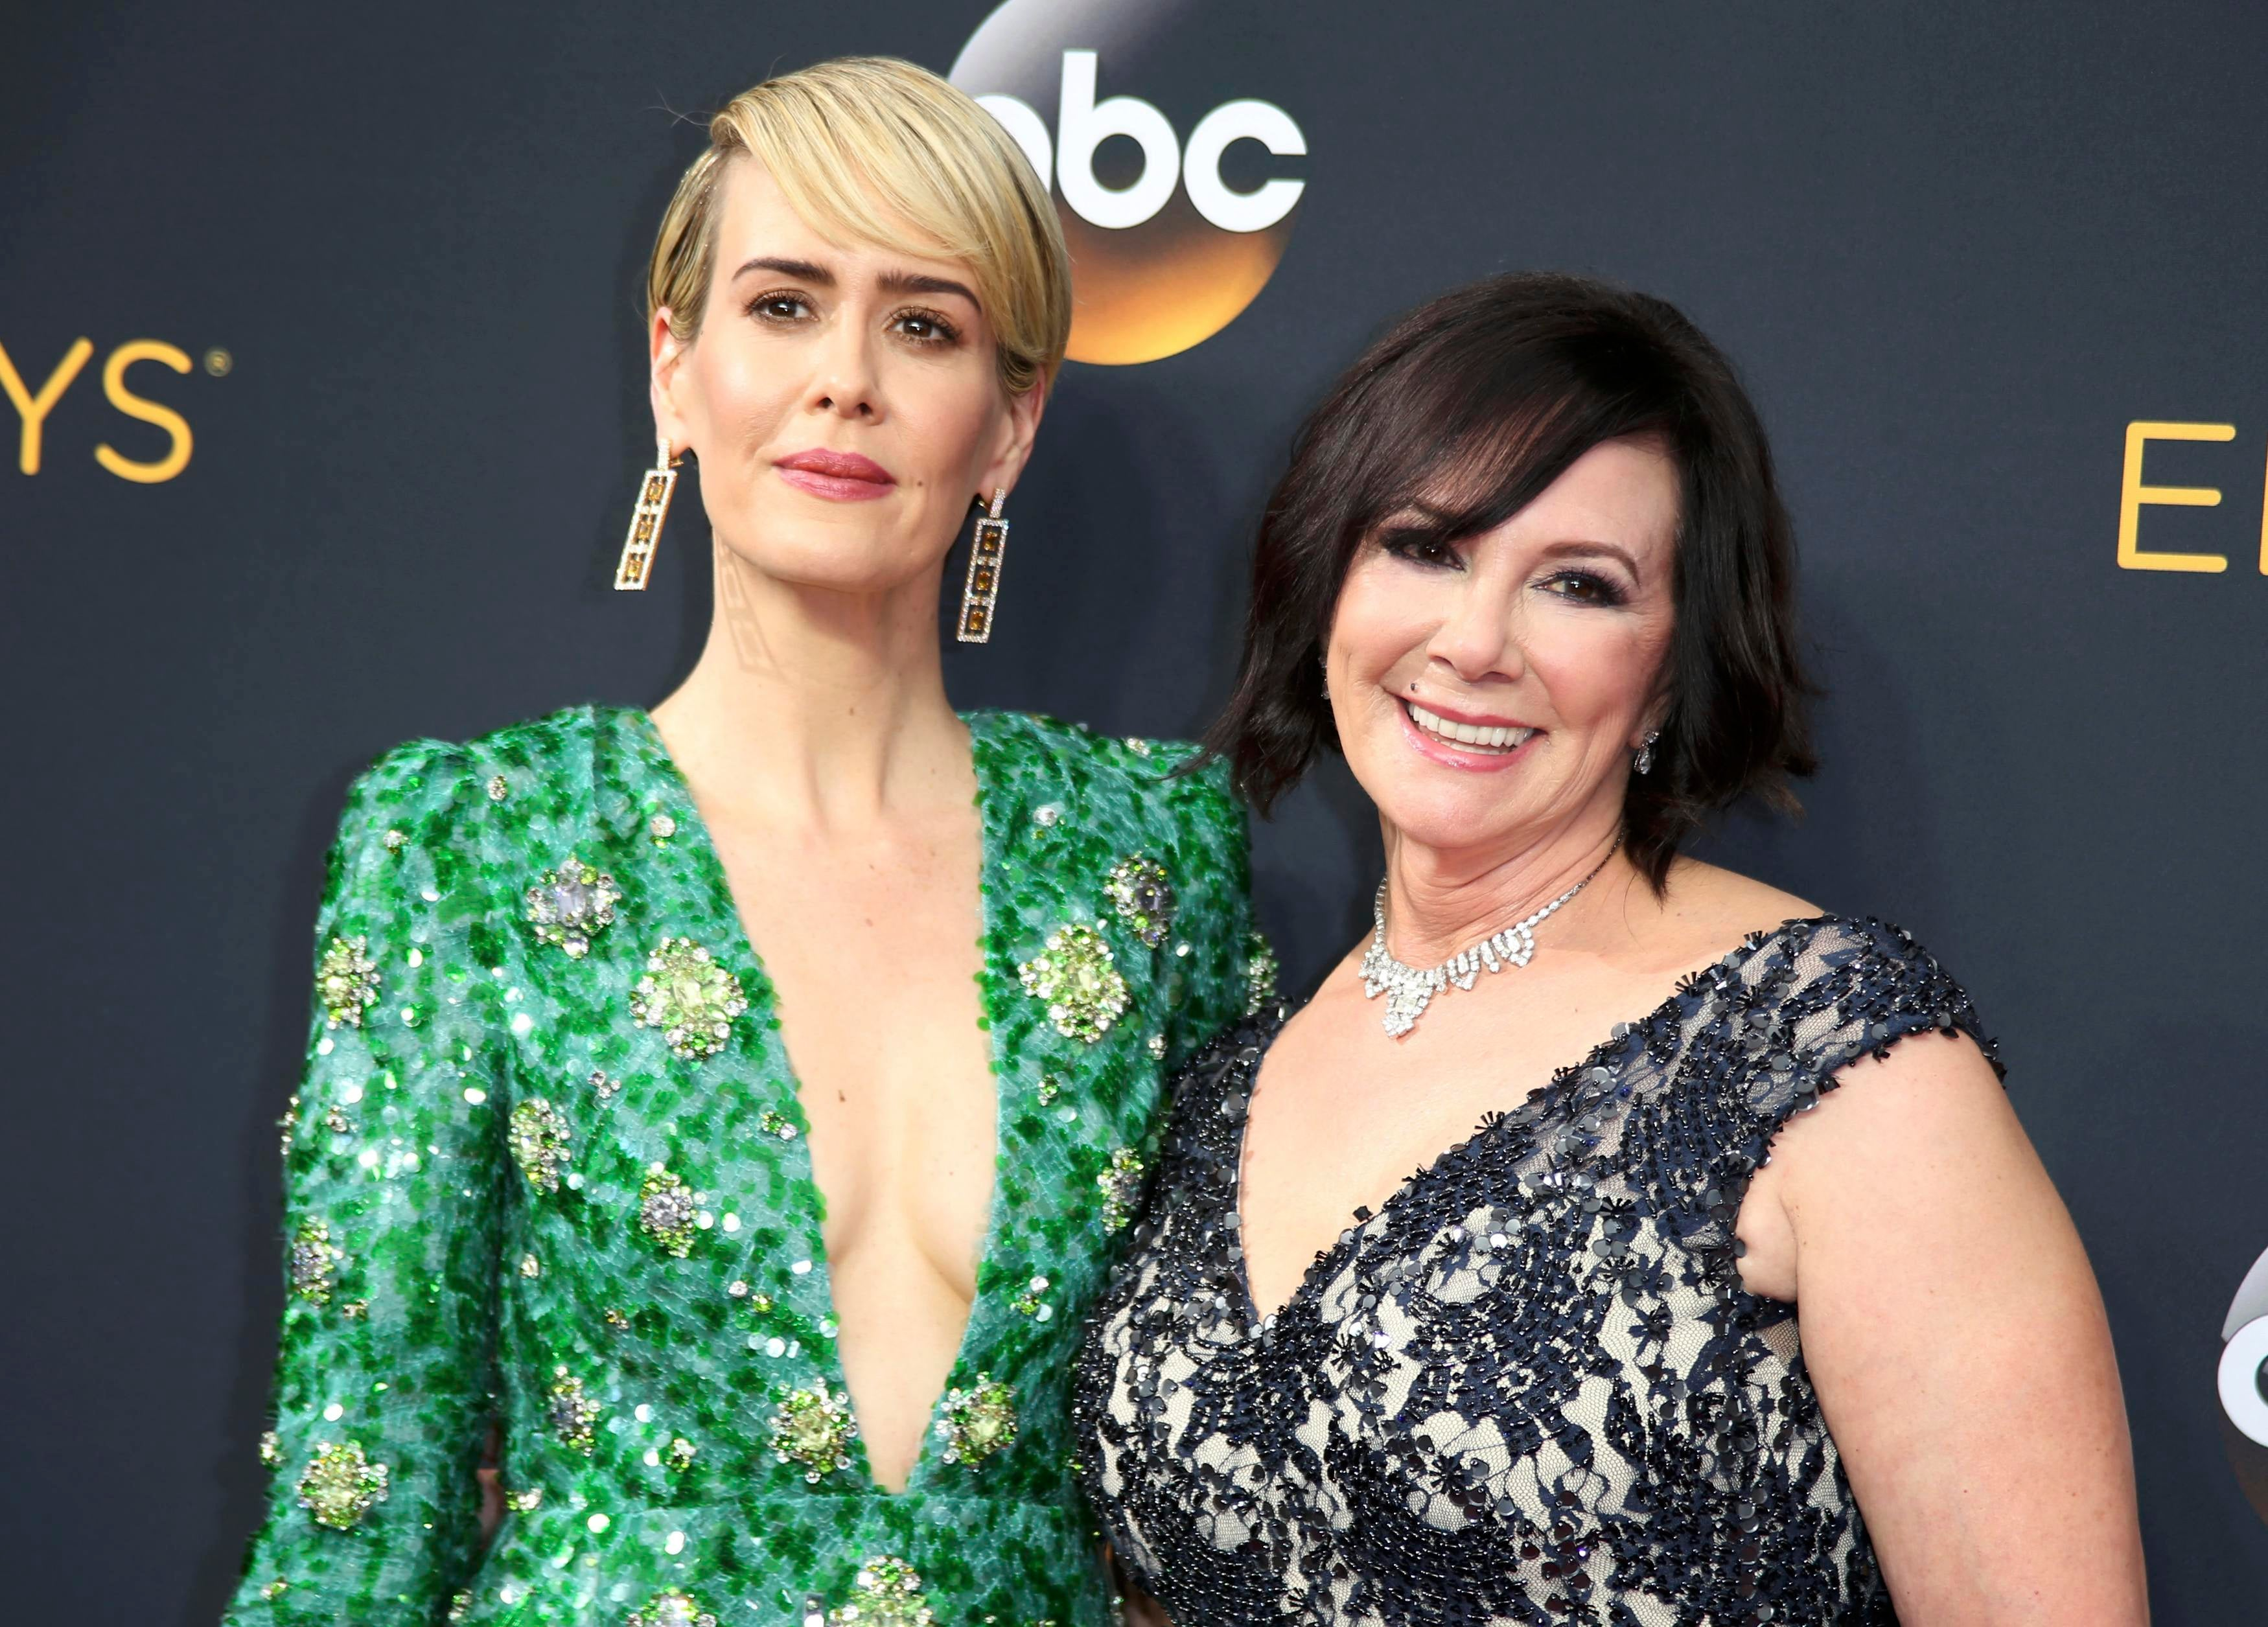 """Actress Sarah Paulson from FX Network's """"The People v. O. J. Simpson: American Crime Story"""" and prosecutor Marcia Clark arrive at the 68th Primetime Emmy Awards in Los Angeles, California U.S., September 18, 2016. REUTERS/Lucy Nicholson"""